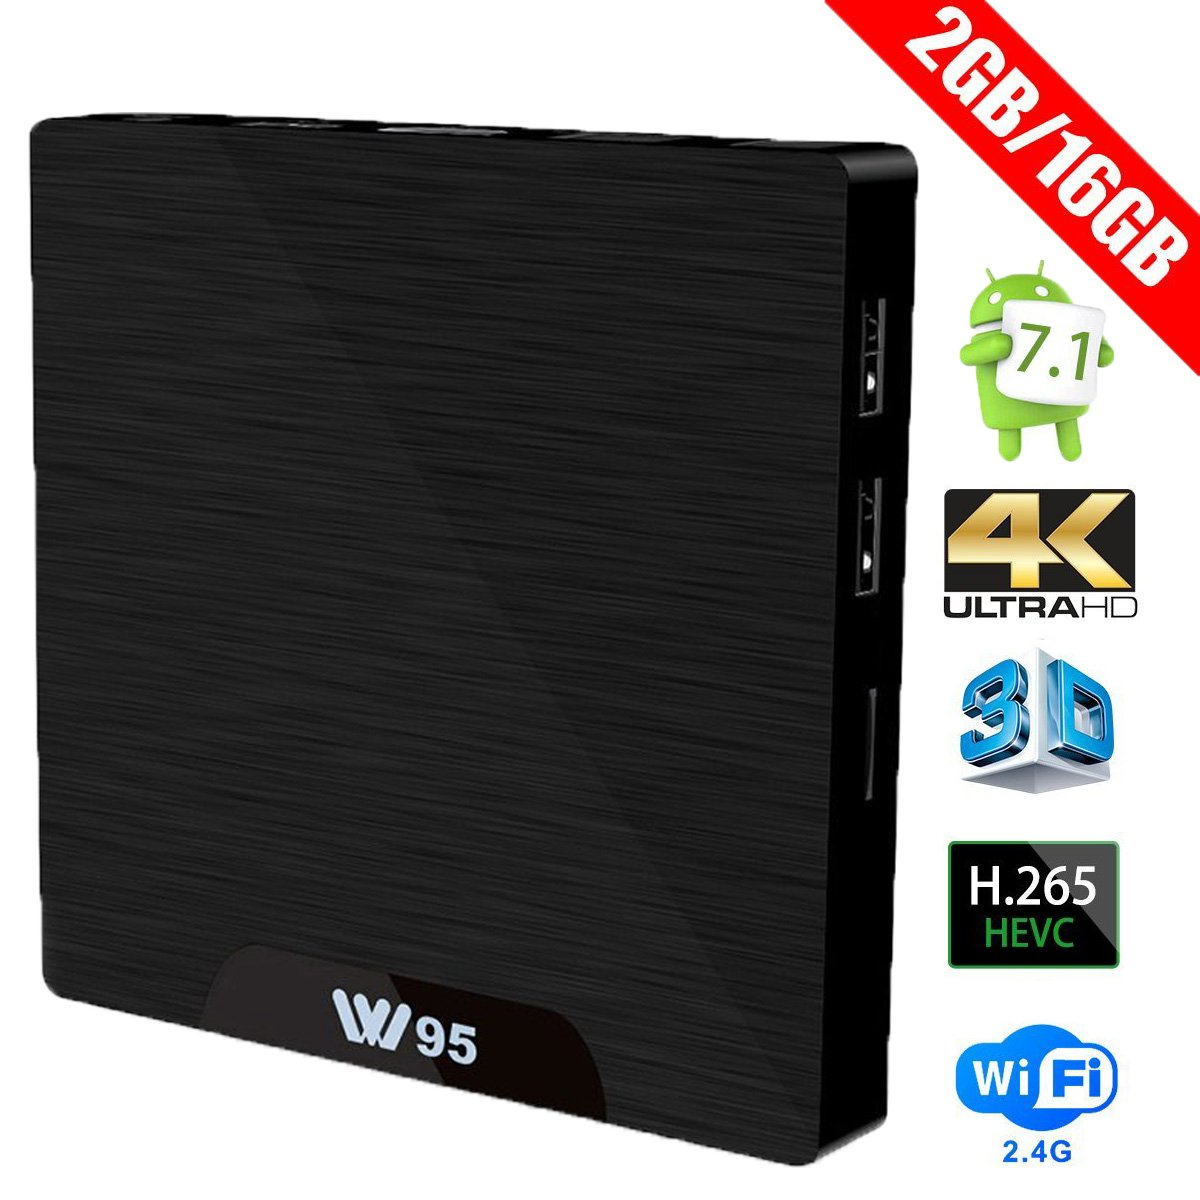 Android 7.1 Smart TV box - W95 2G DDR3 16G eMMC Amlogic S905W Quad Core A53 Processor 2.4G WiFi Internet Set Top Box with HDMI 2.0 4K2K 1080P H.265 AndThere